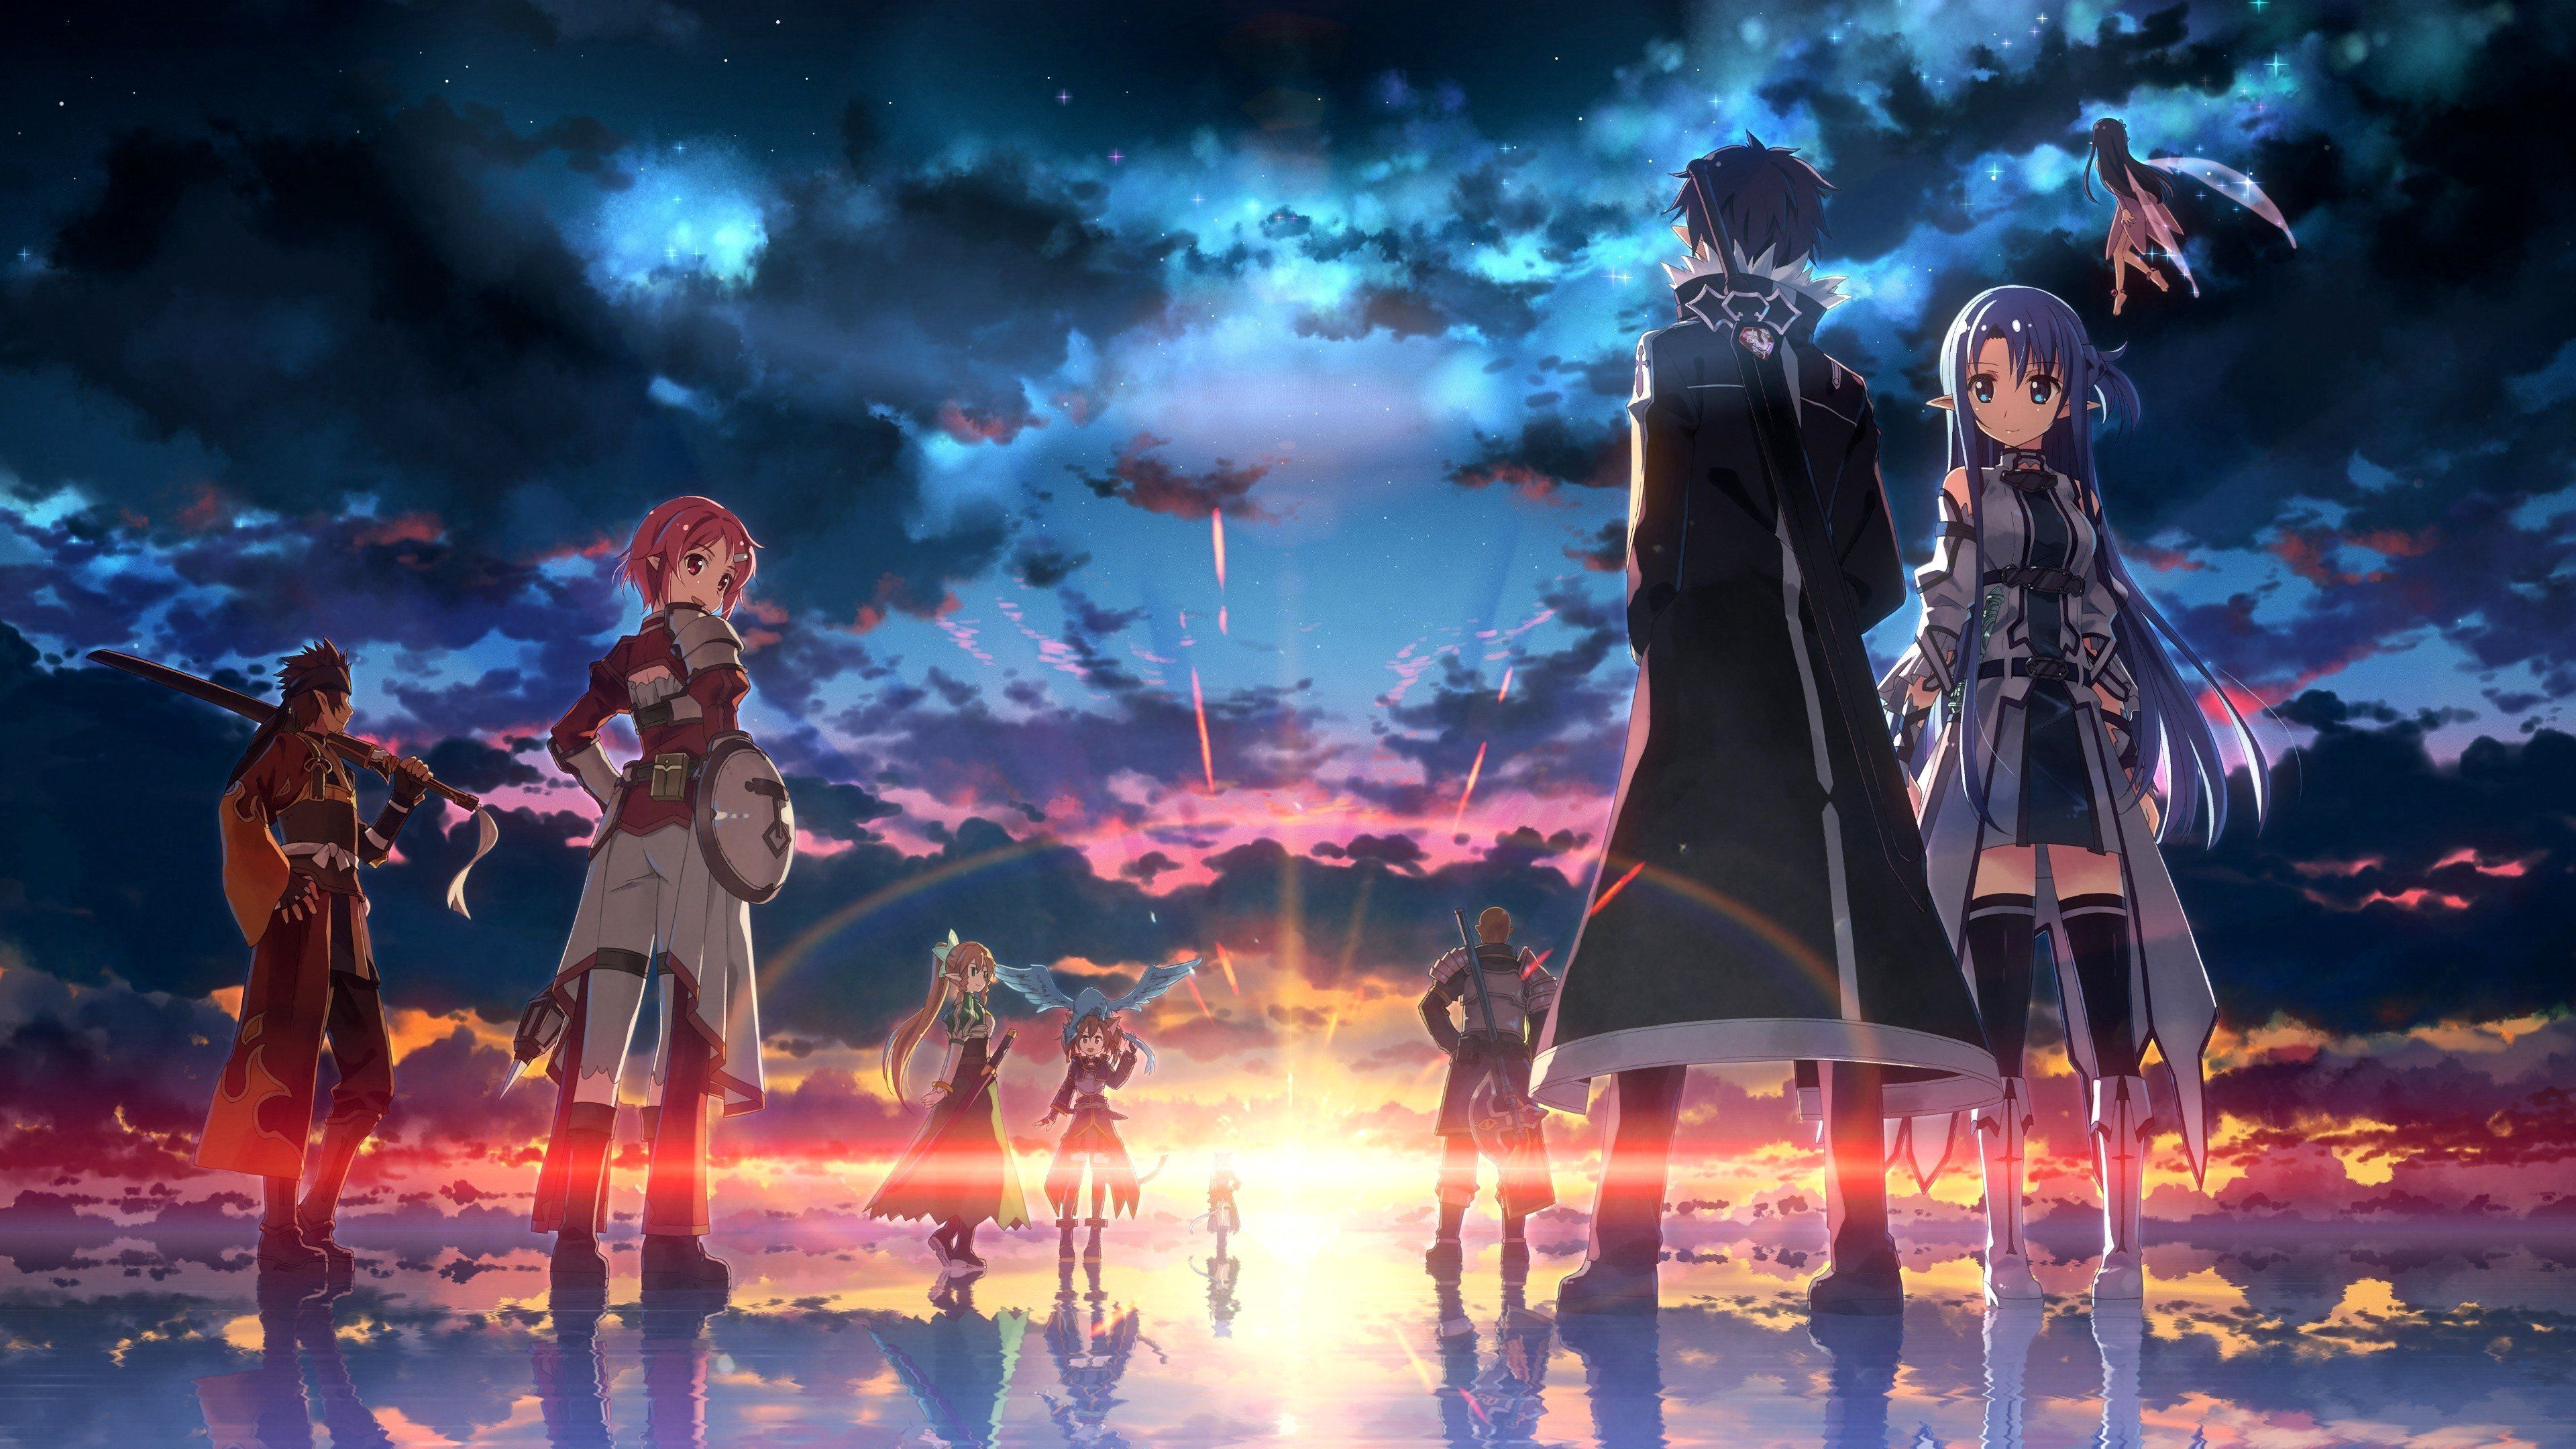 Sword Art Online Wallpaper 4k Pc Ideas In 2020 Sword Art Online